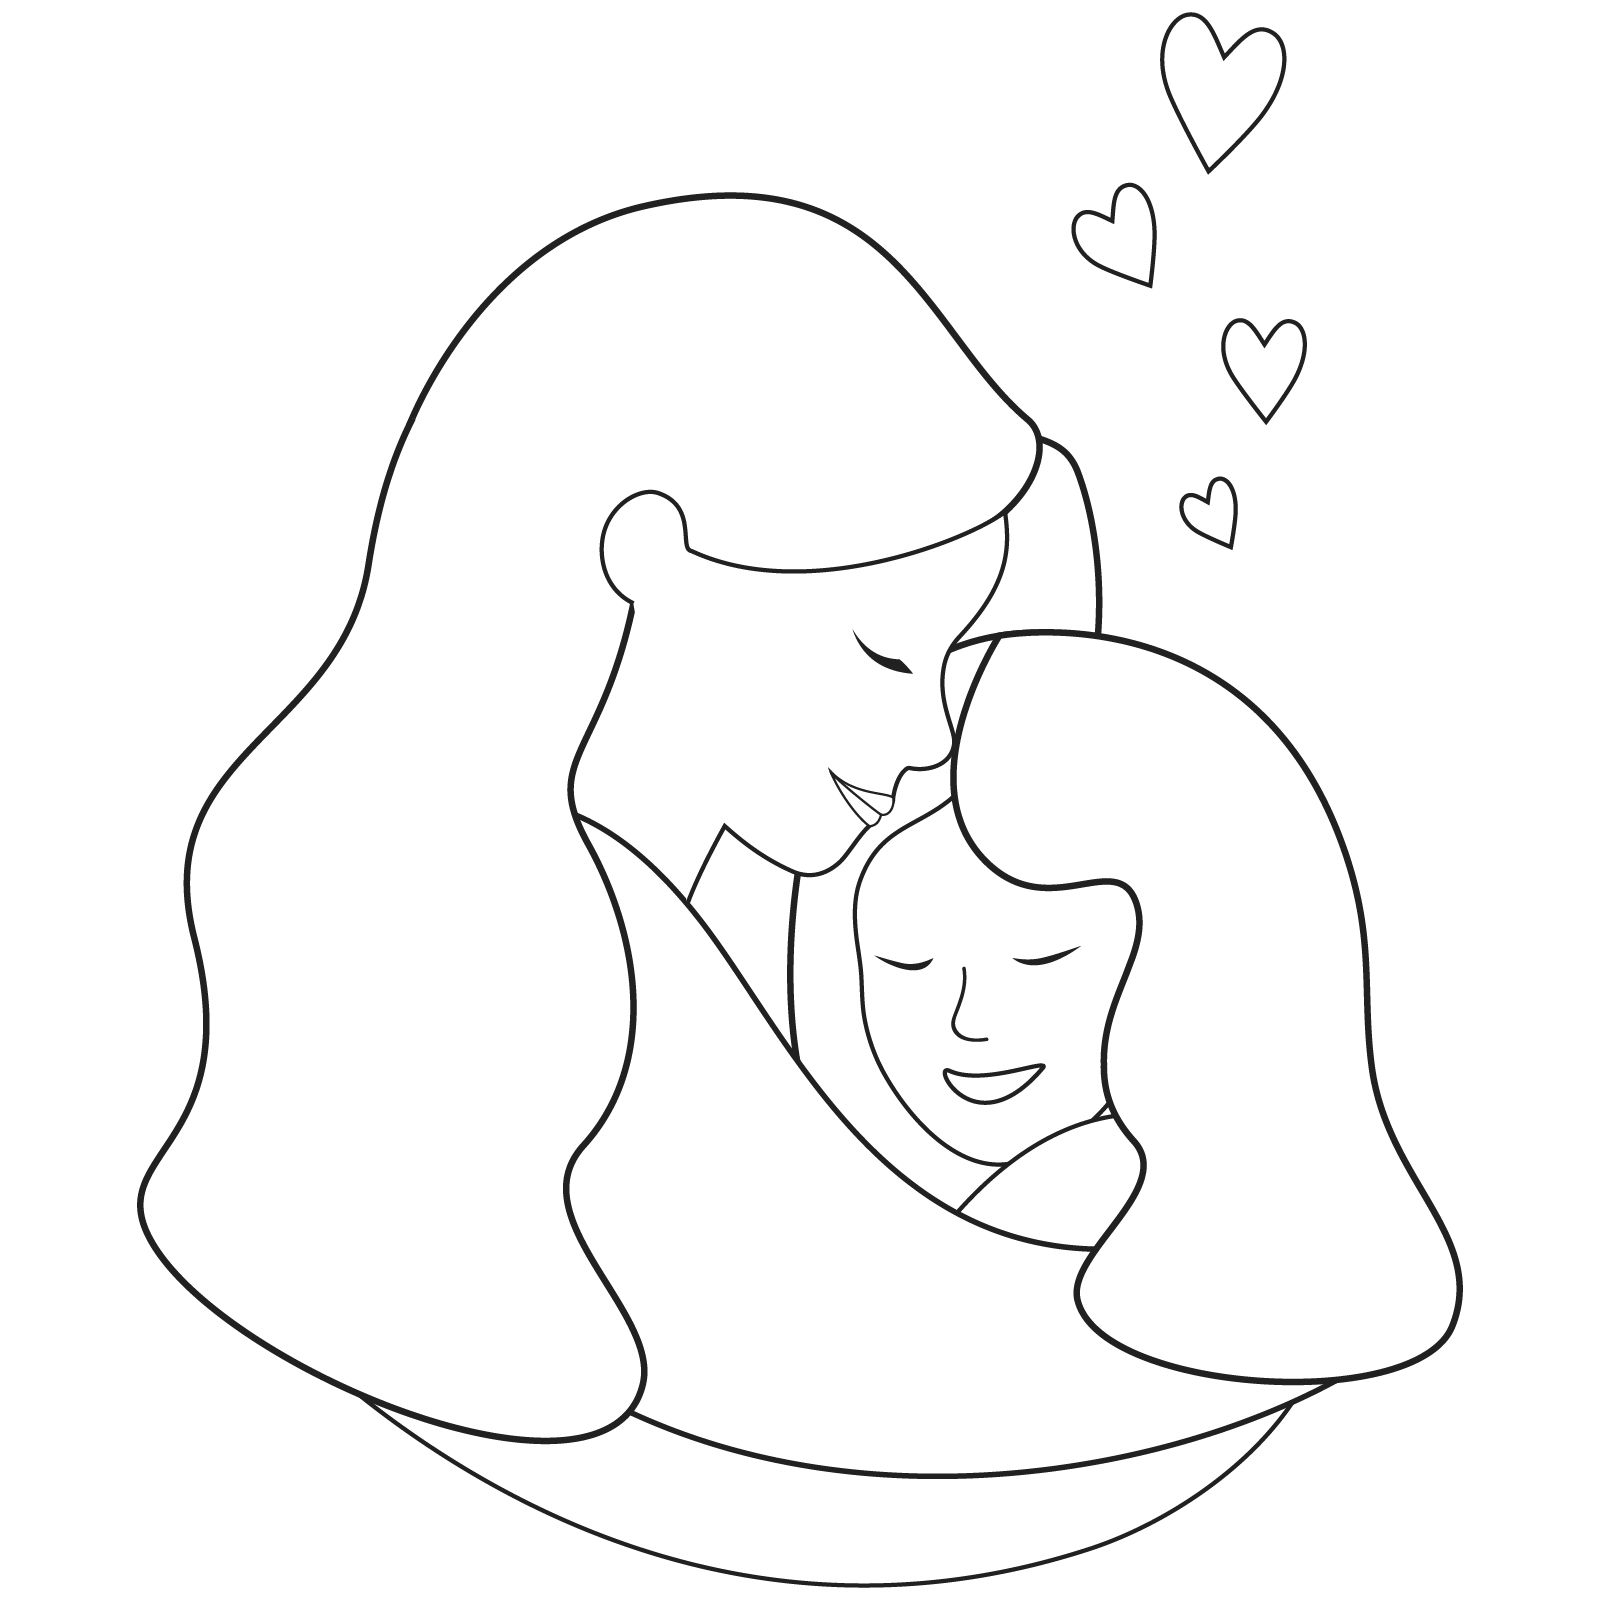 Mom Clipart Black And White Ideas In 2021 Mom Clipart Clipart Black And White Mom Art